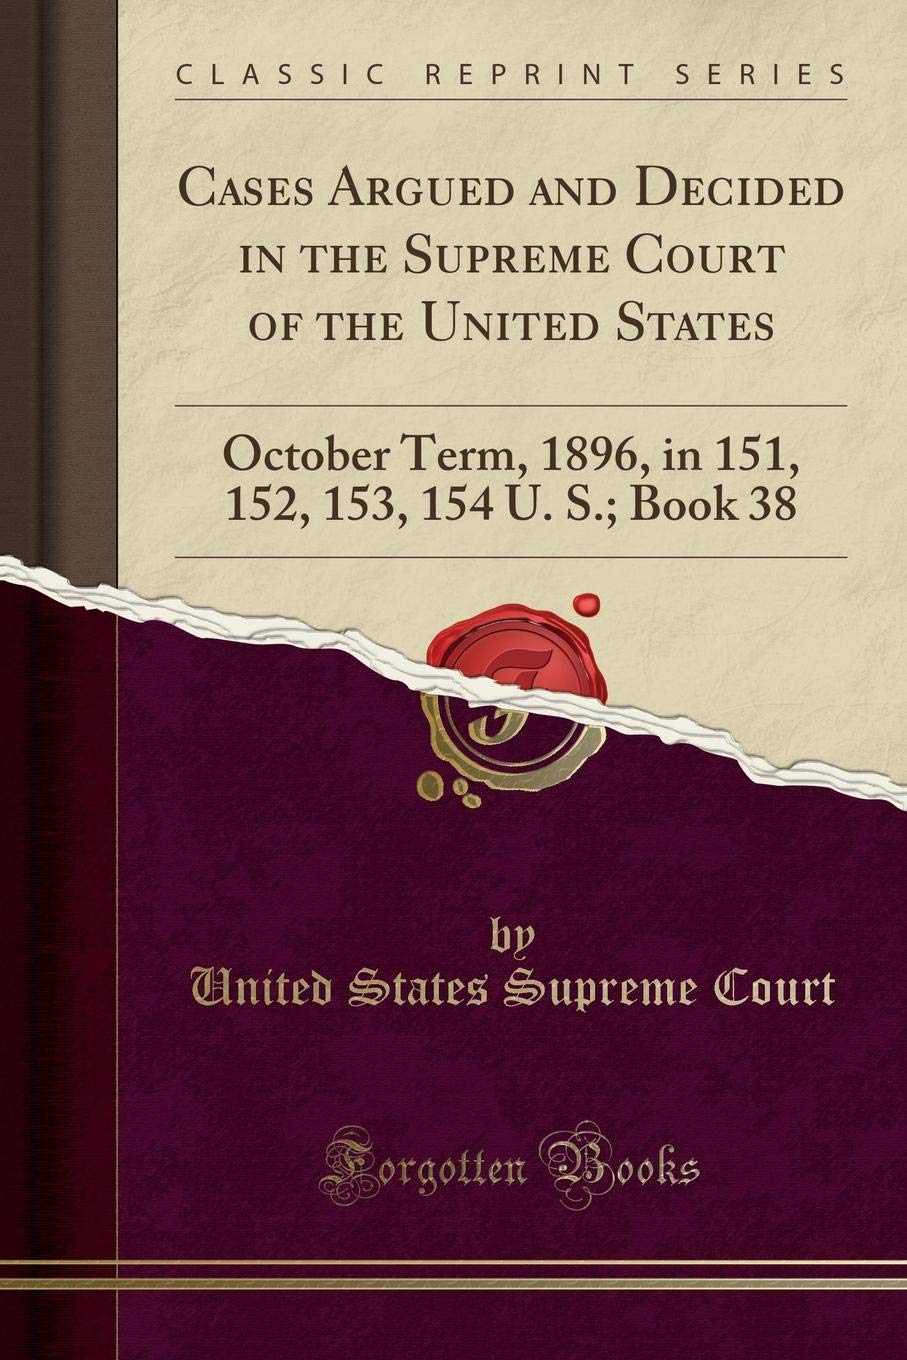 Cases Argued and Decided in the Supreme Court of the United States: October Term, 1896, in 151, 152, 153, 154 U. S.; Book 38 (Classic Reprint) ebook